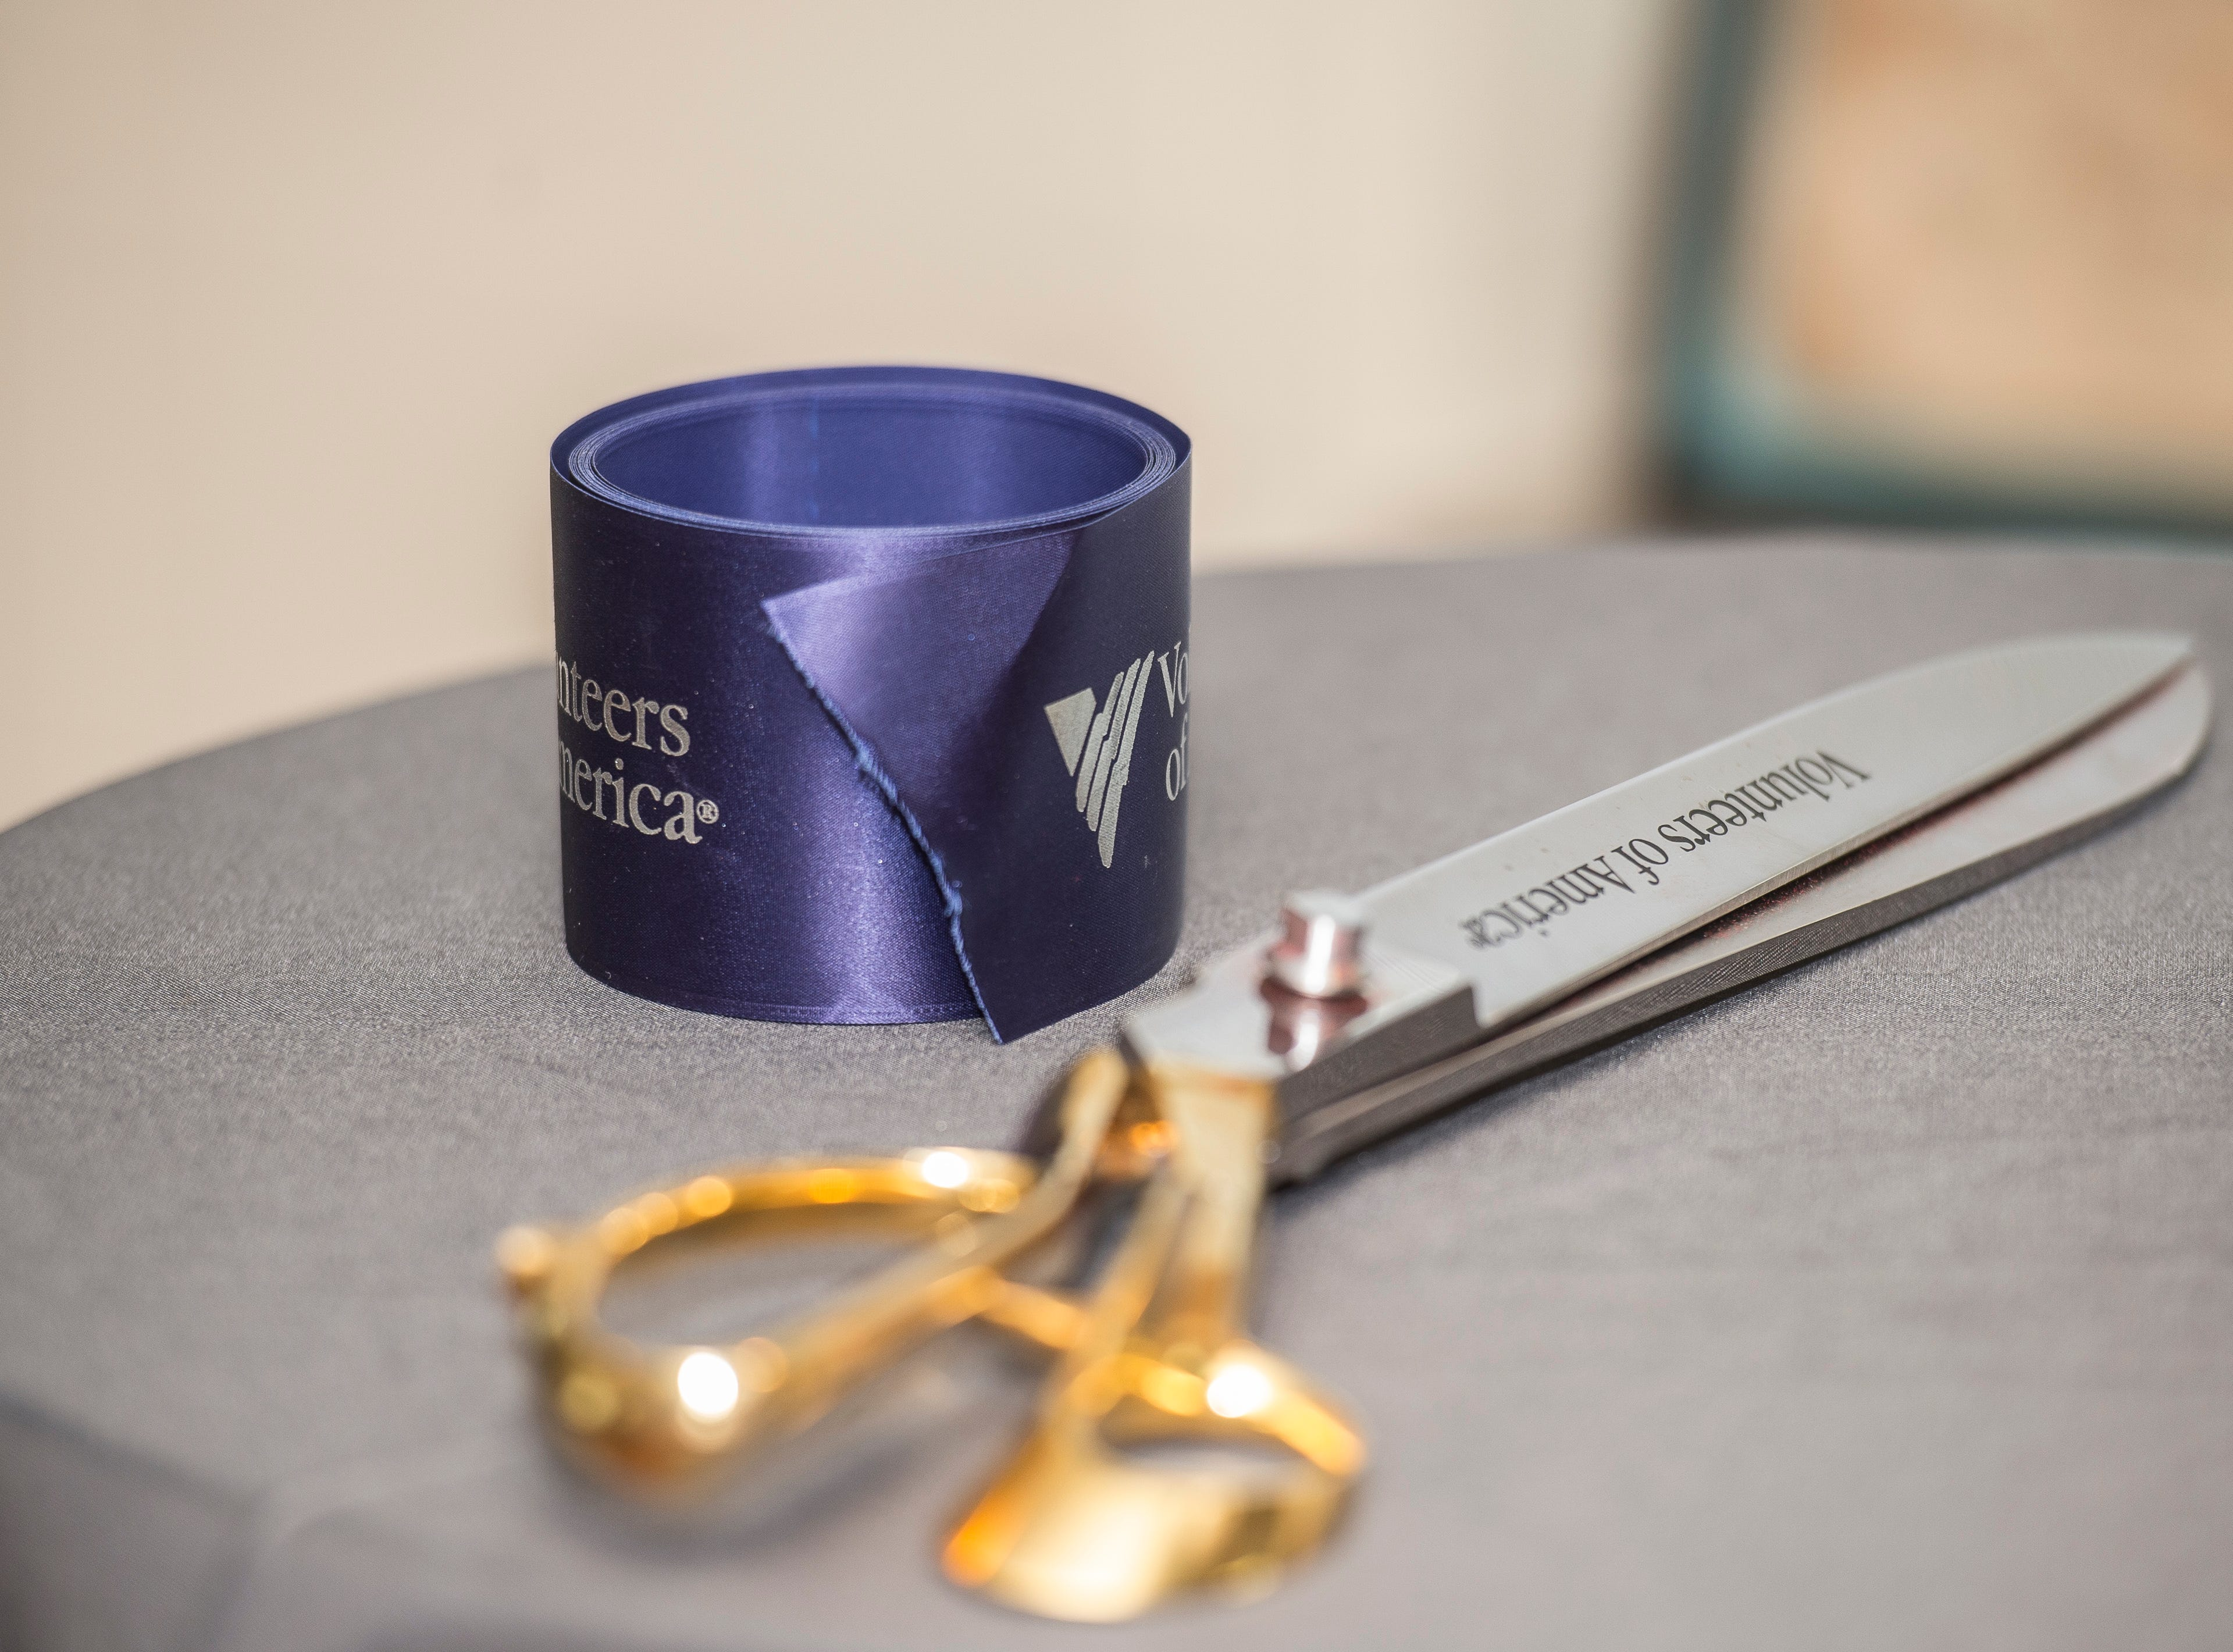 Special ribbon and scissors sit on a table for a ribbon cutting following a news conference celebrating the opening of the Winchester House, a new drug treatment facility for women, in Winchester, Ind., on Wednesday, Aug. 1, 2018.